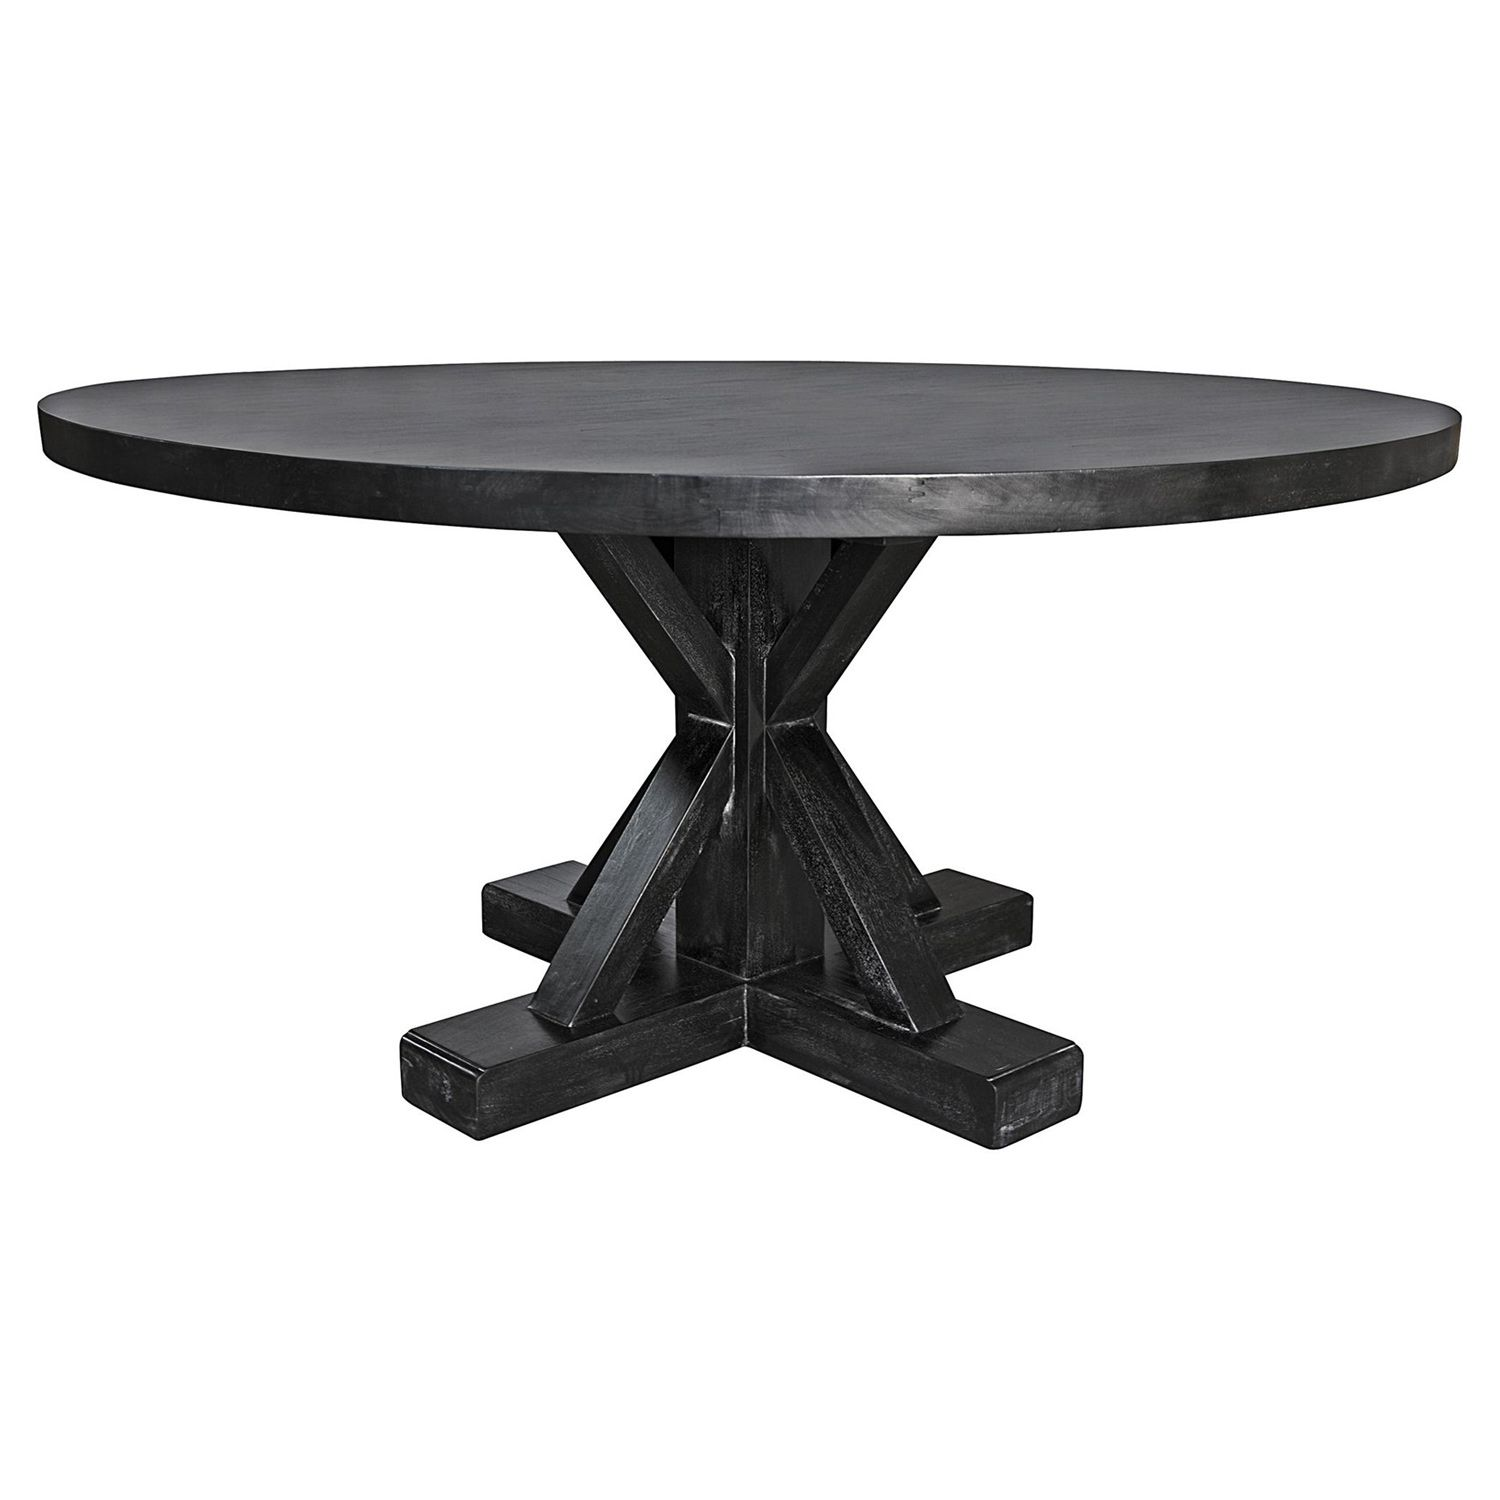 Noir Criss Cross Hand Rubbed Black Dining Table LaylaGrayce